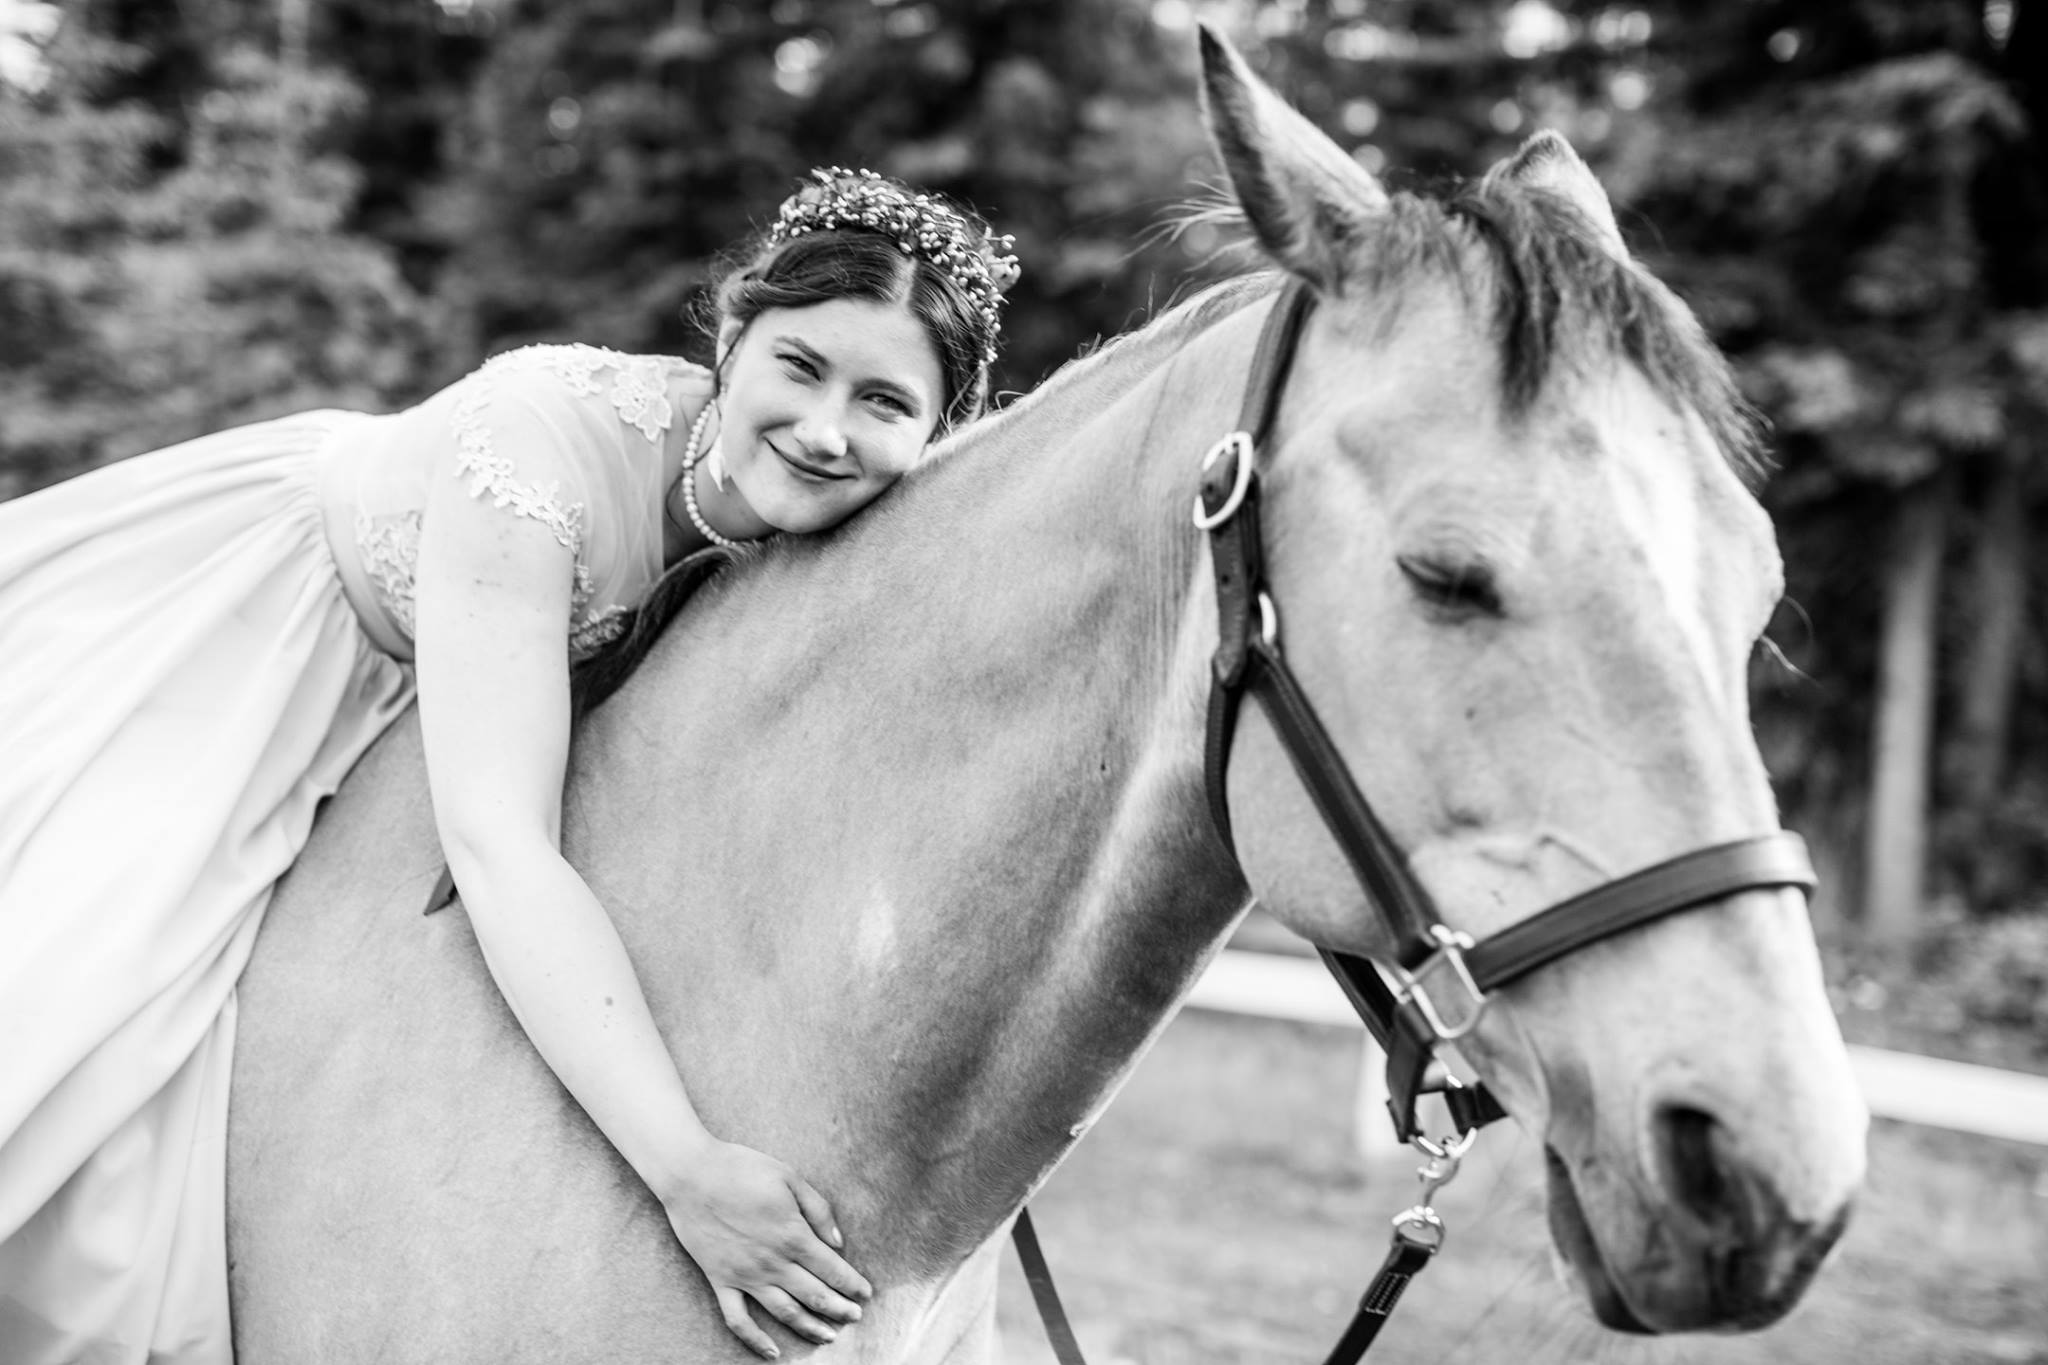 Meet your 4-H leader, Zoe Seppi - I was born and raised in Alaska and have been riding horses since I was about 8 years old. I took a few lessons and mostly trail rode throughout my teenage years. In high school I was part of South High Schools AF JROTC program and flag football team. As an adult I was able to go to more horse activities and began participating and competing in Competitive Trail Riding as well as going to as many fun days and and clinics as I could. I have trained with Steve Rother and Wylene Wilson and have multiple certificates through Equi-Health USA. I am currently part of the Anchorage Horse Council board and help run the William Chamberlin Equestrian Center year round. I own Raven Tree Stables in Anchorage with my husband and have two horses of my own, Romeo my gelding, and Frosty my retired mare.